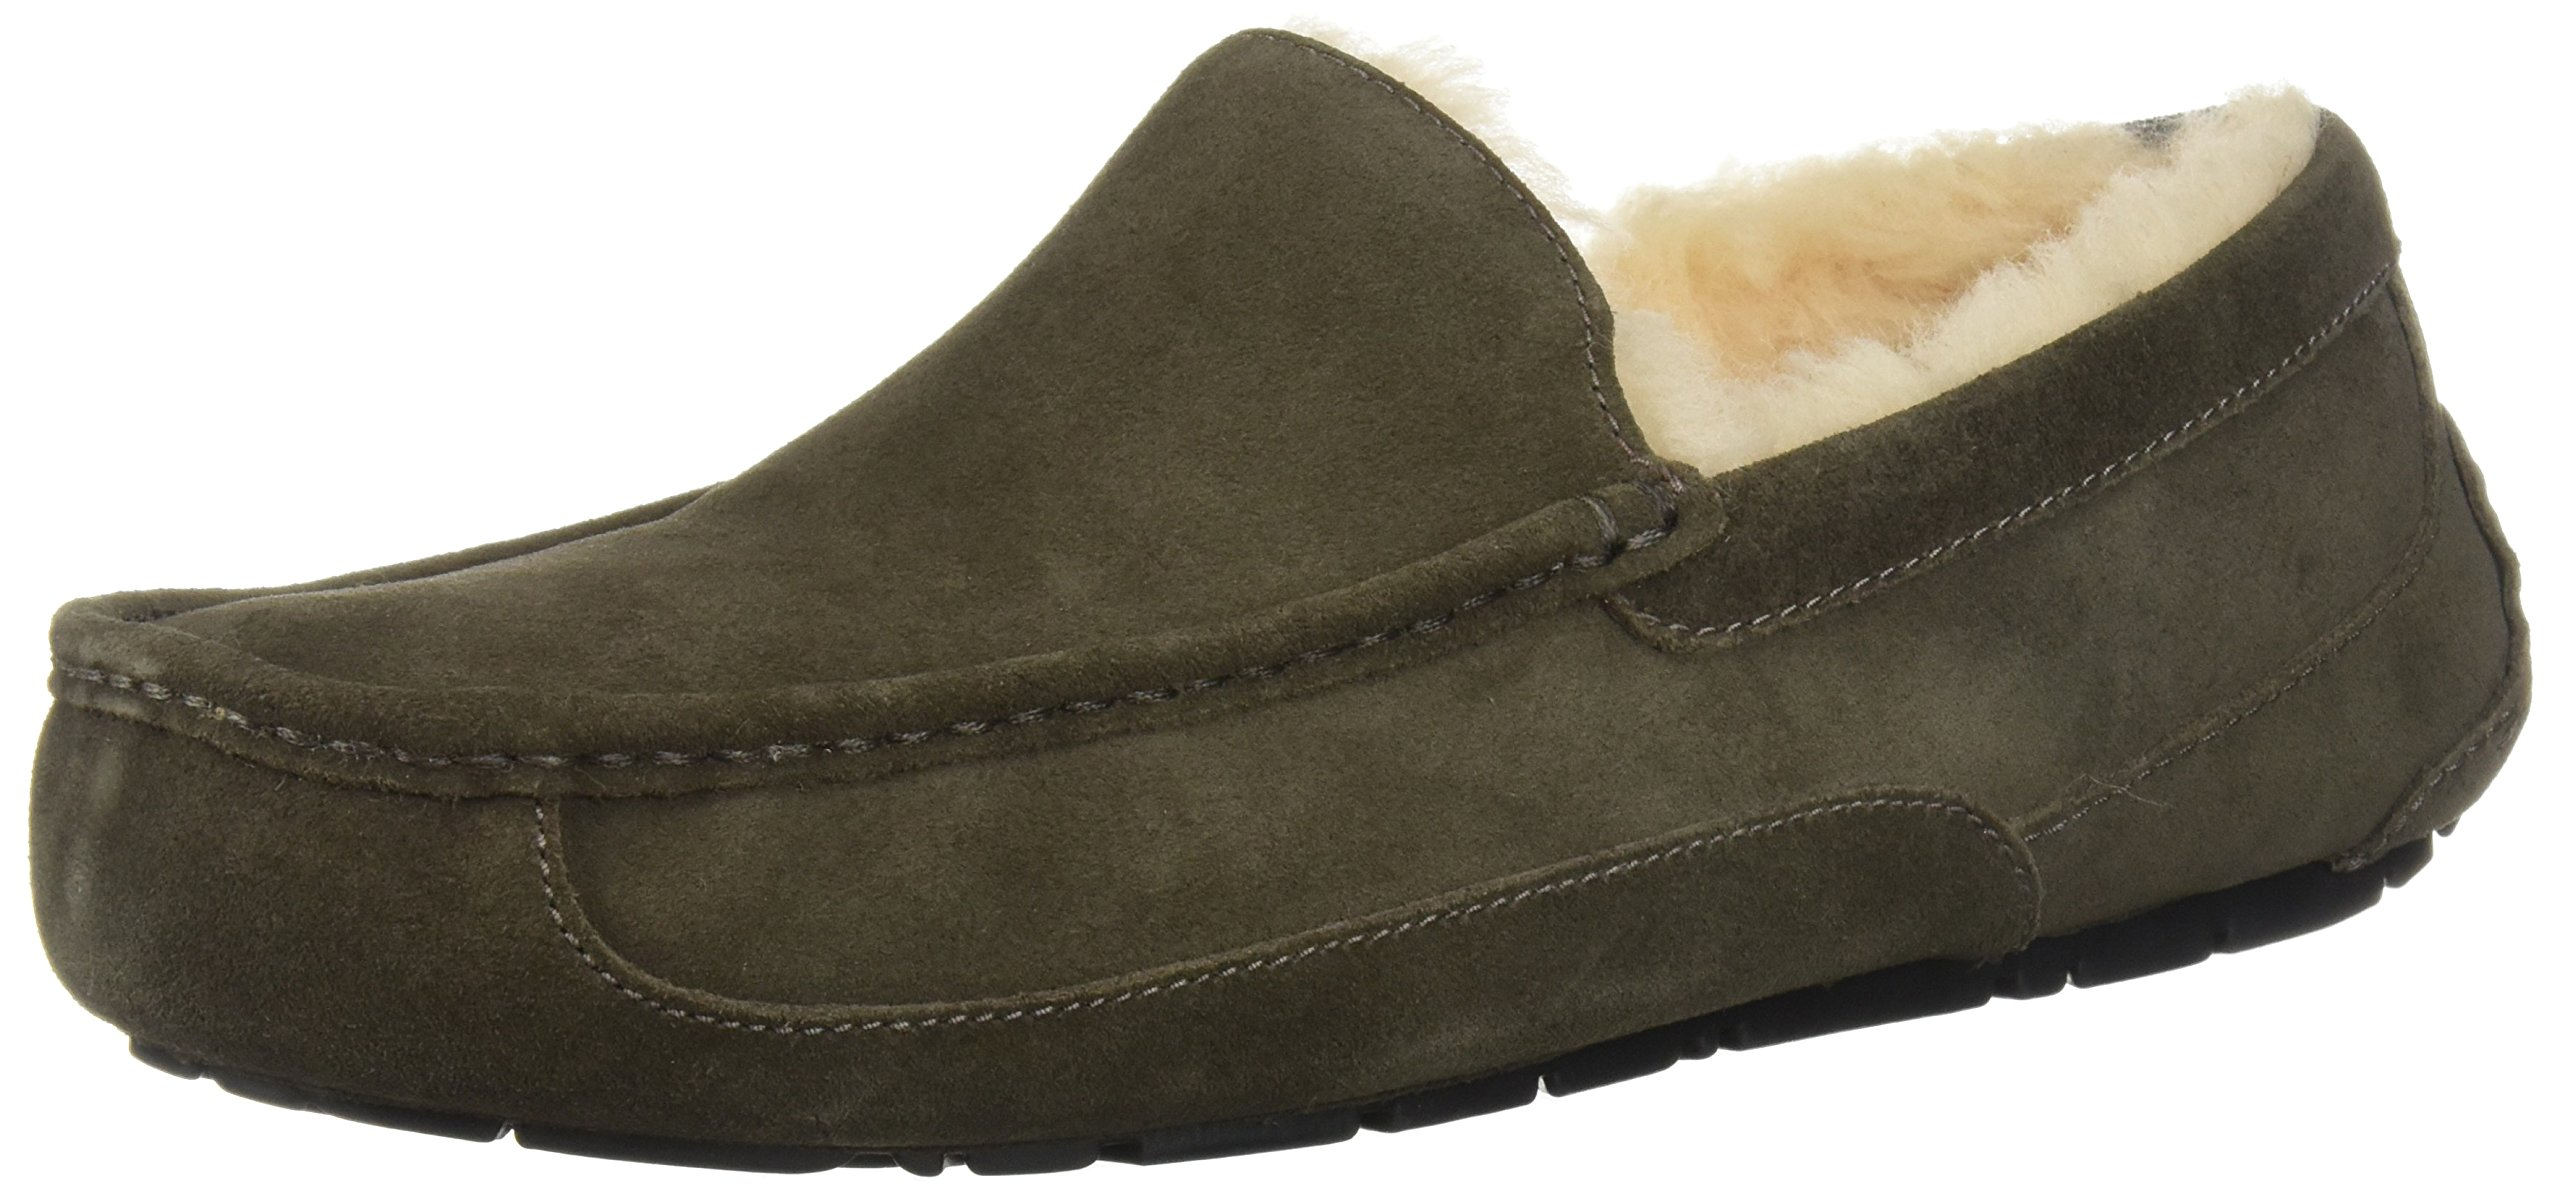 UGG Men's Ascot Slipper, Charcoal, 09 M US